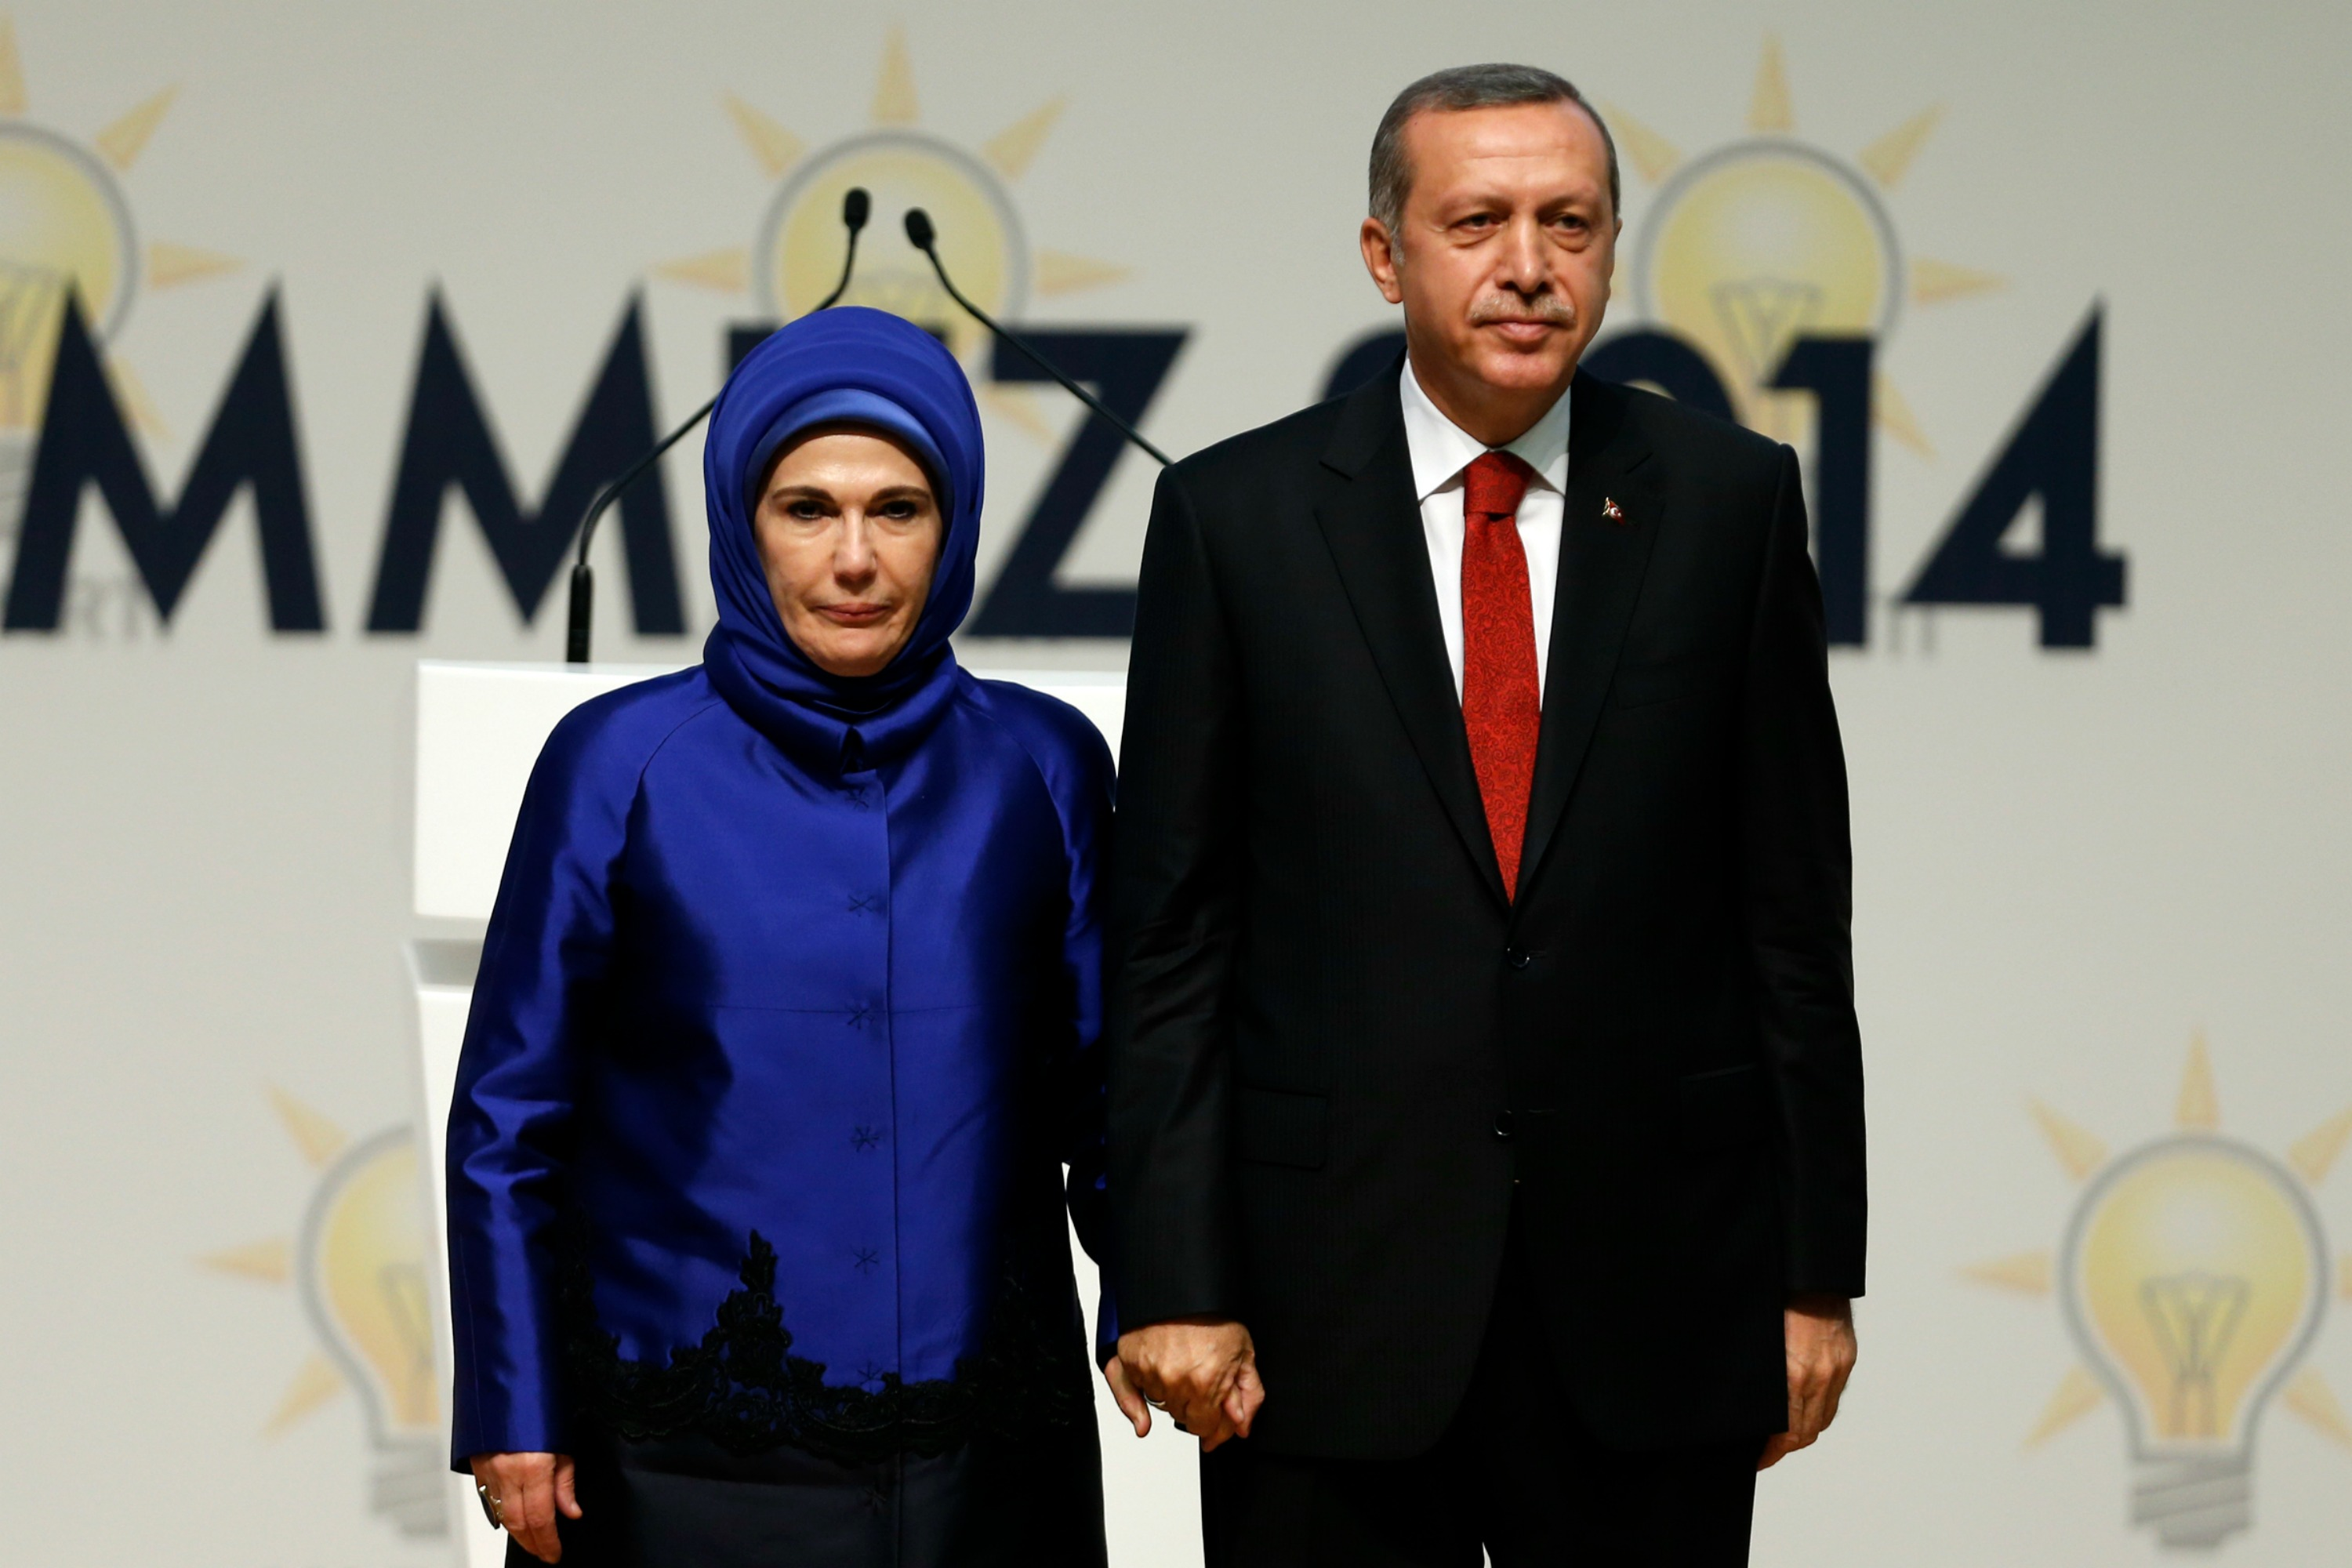 Erdogan and his wife Emine at a meeting where he is named as AKP candidate for the country's first direct presidential election [Reuters]